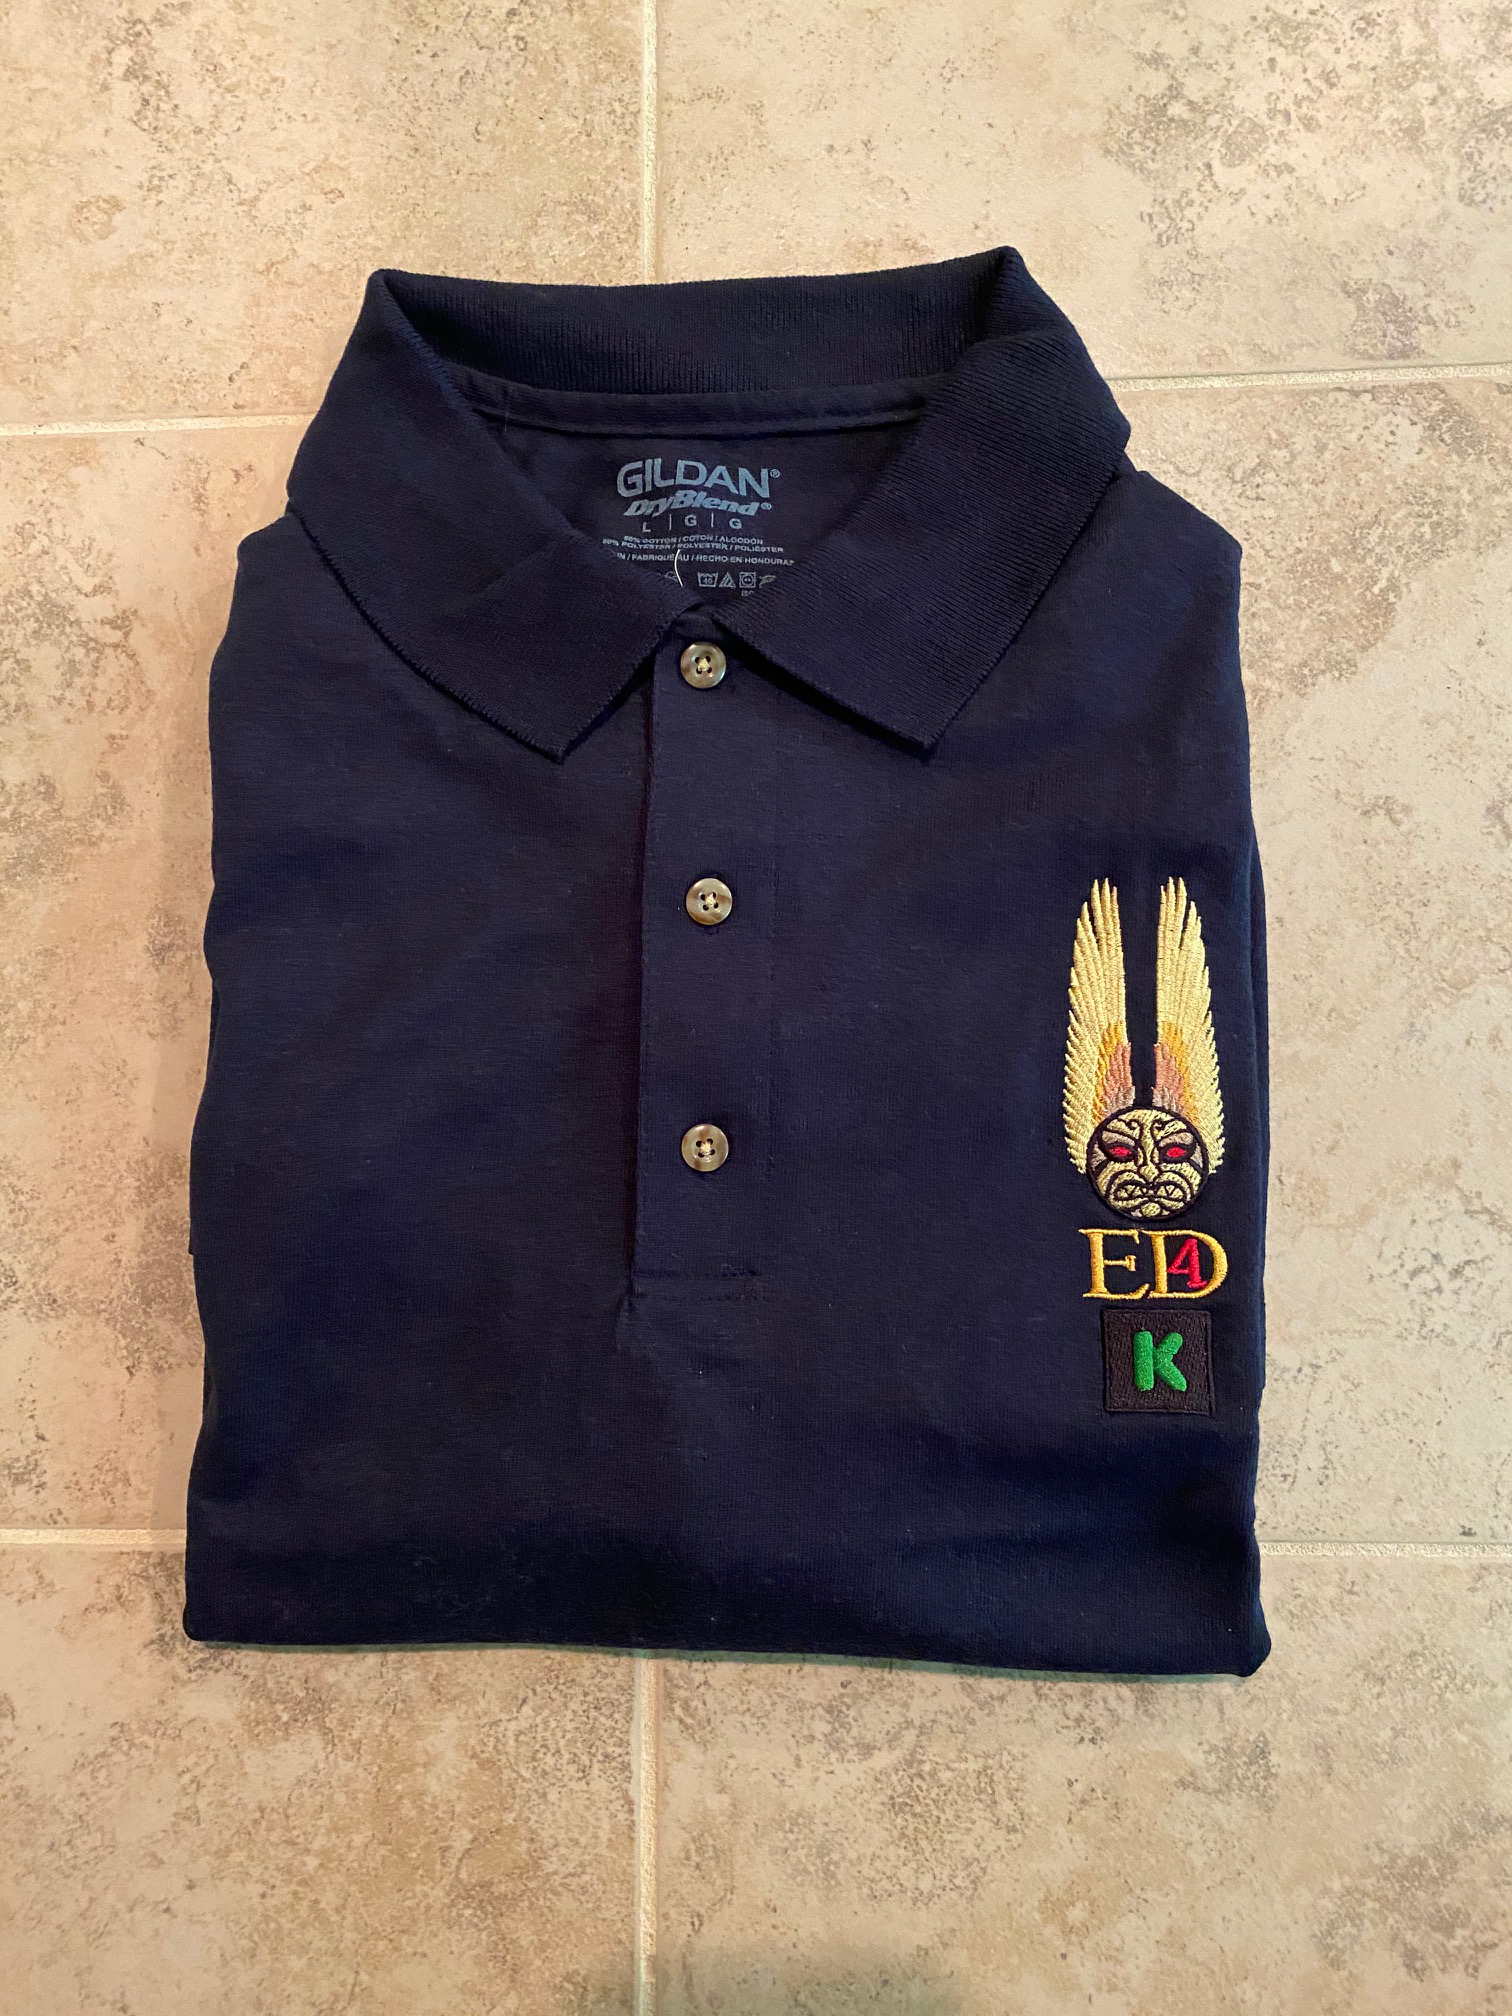 Earthdawn Logo Polo Shirt